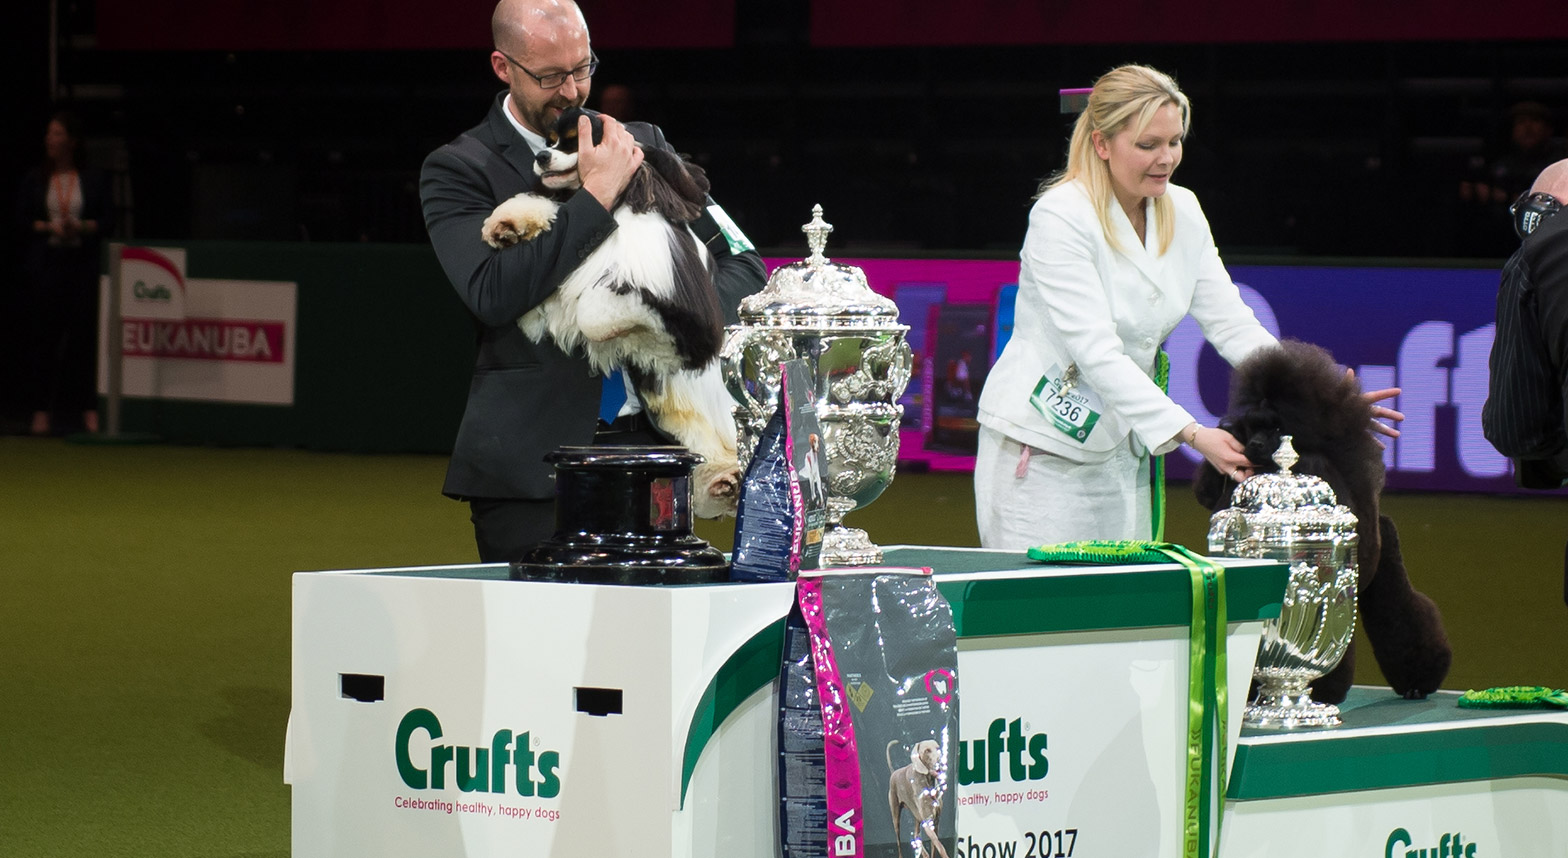 crufts-arenas.jpg